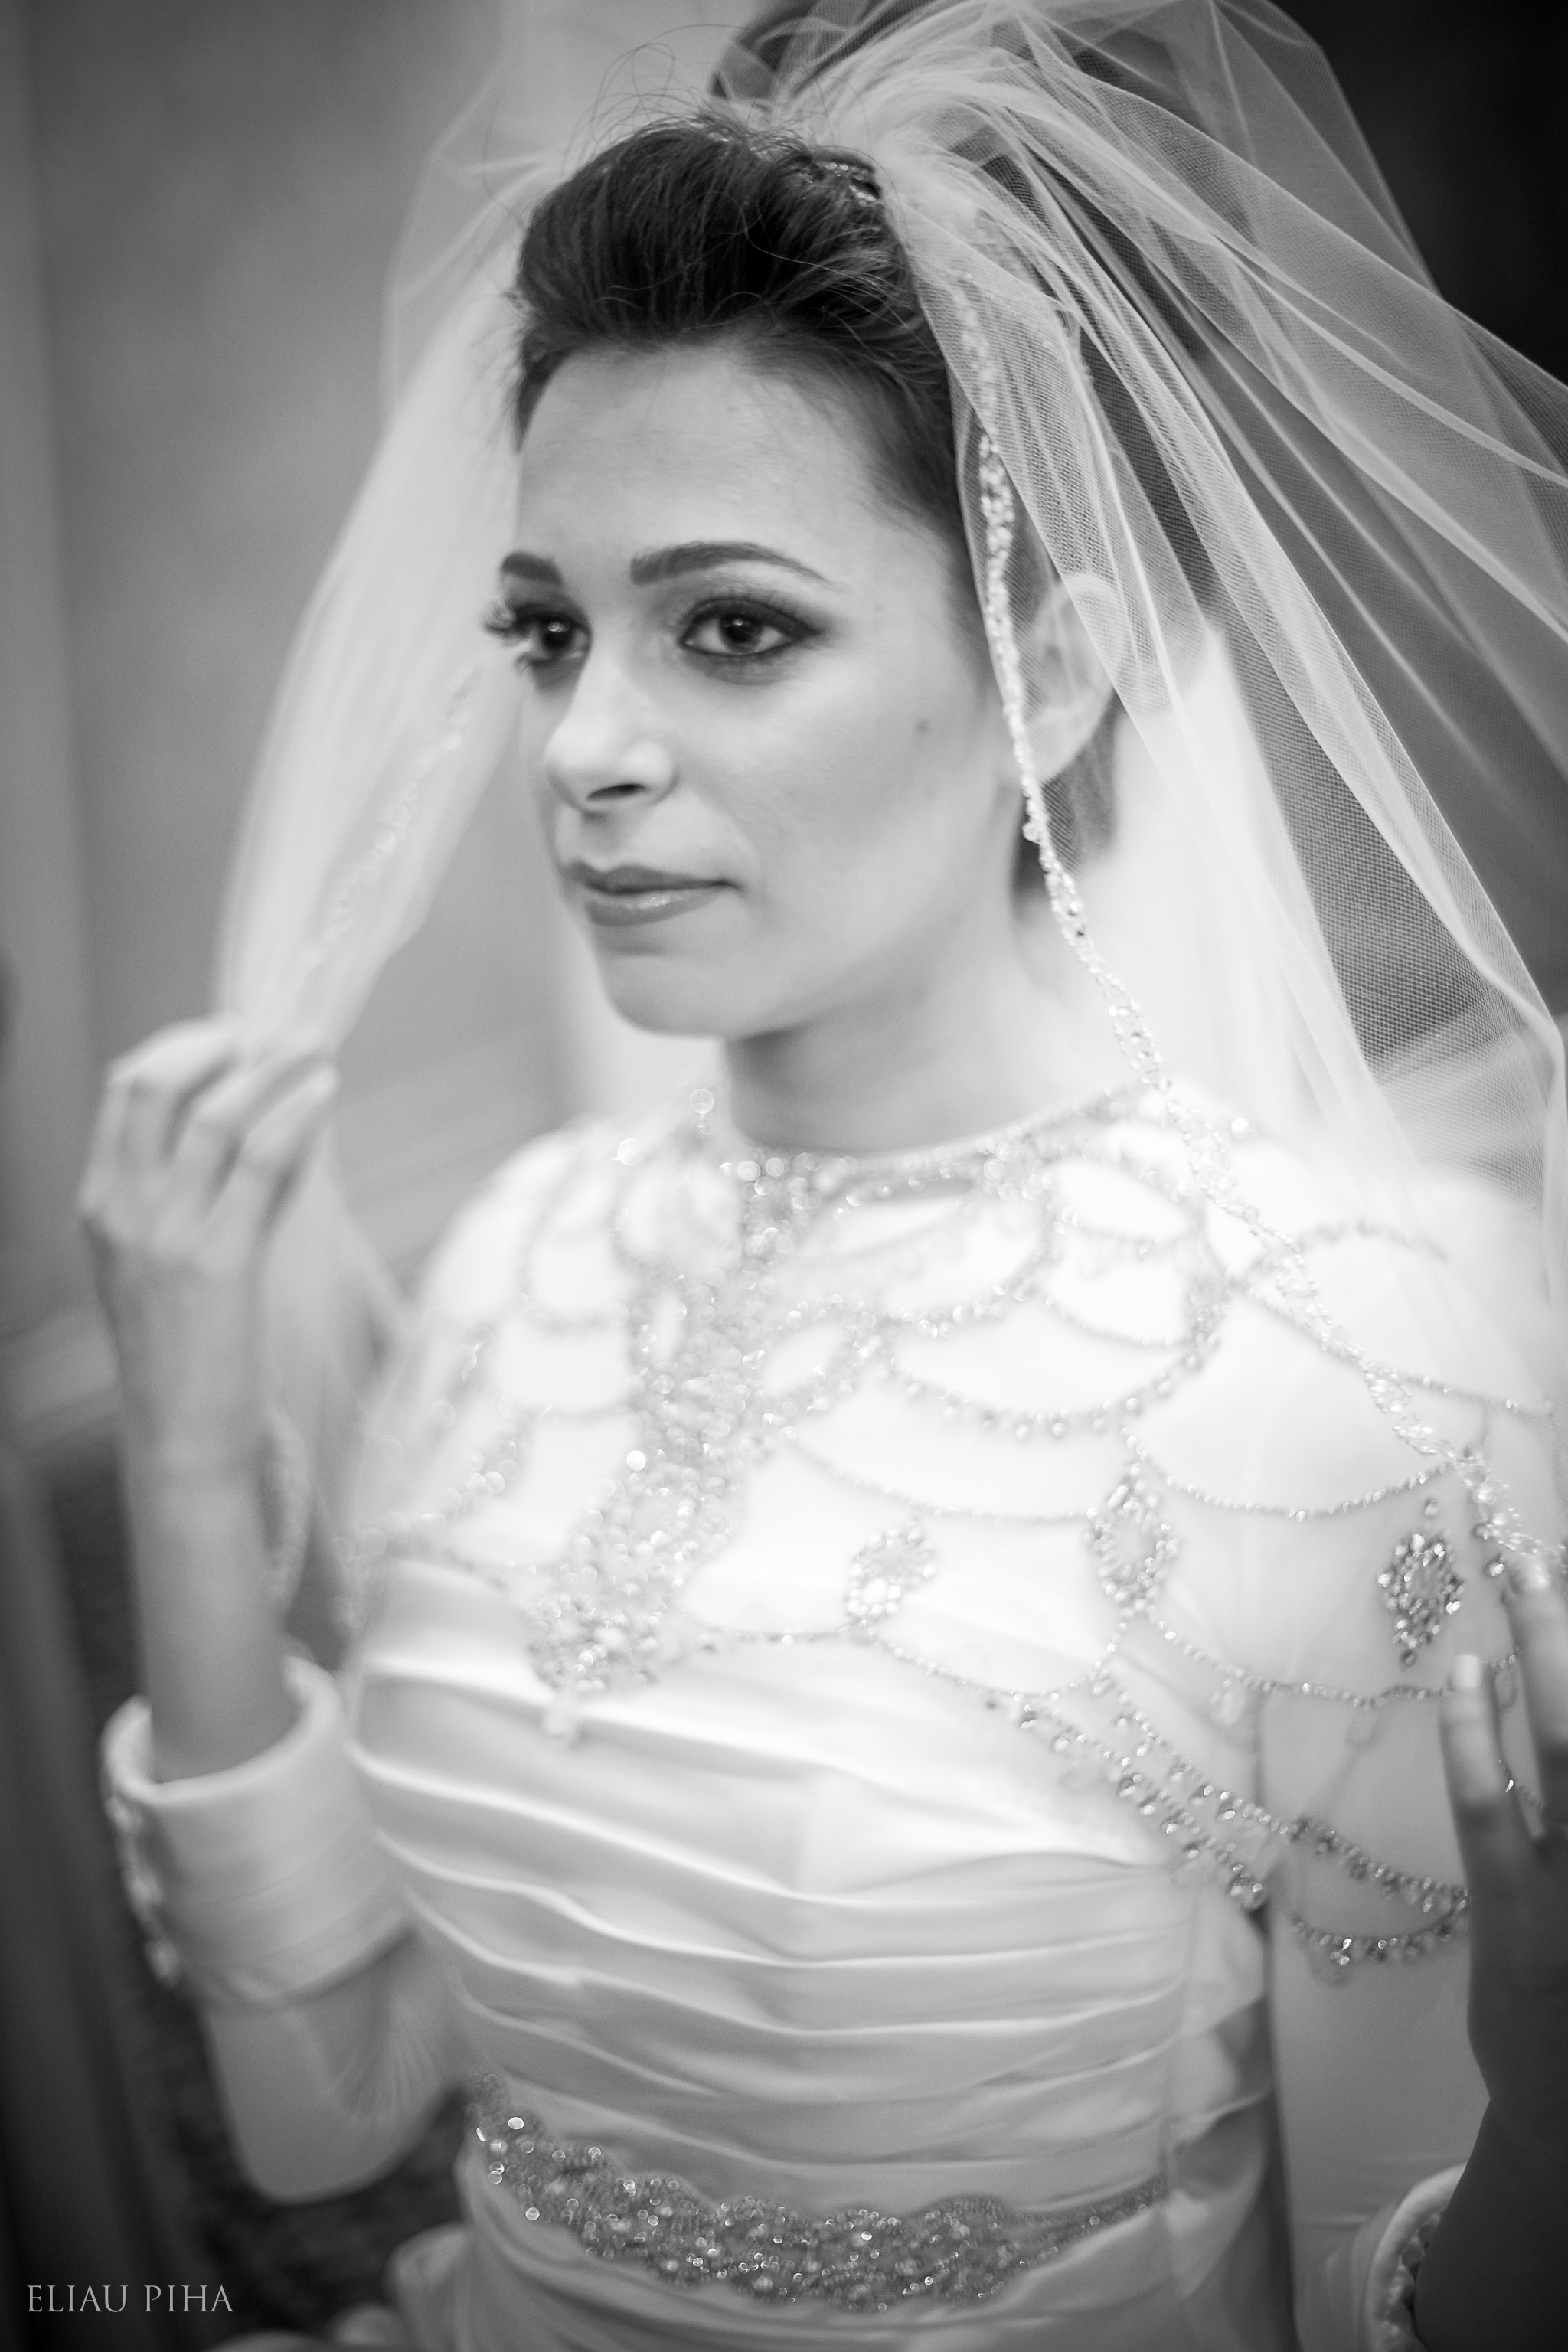 Wedding Sara and Ayal | Eliau Piha studio photography, new york, events, people-19.jpg